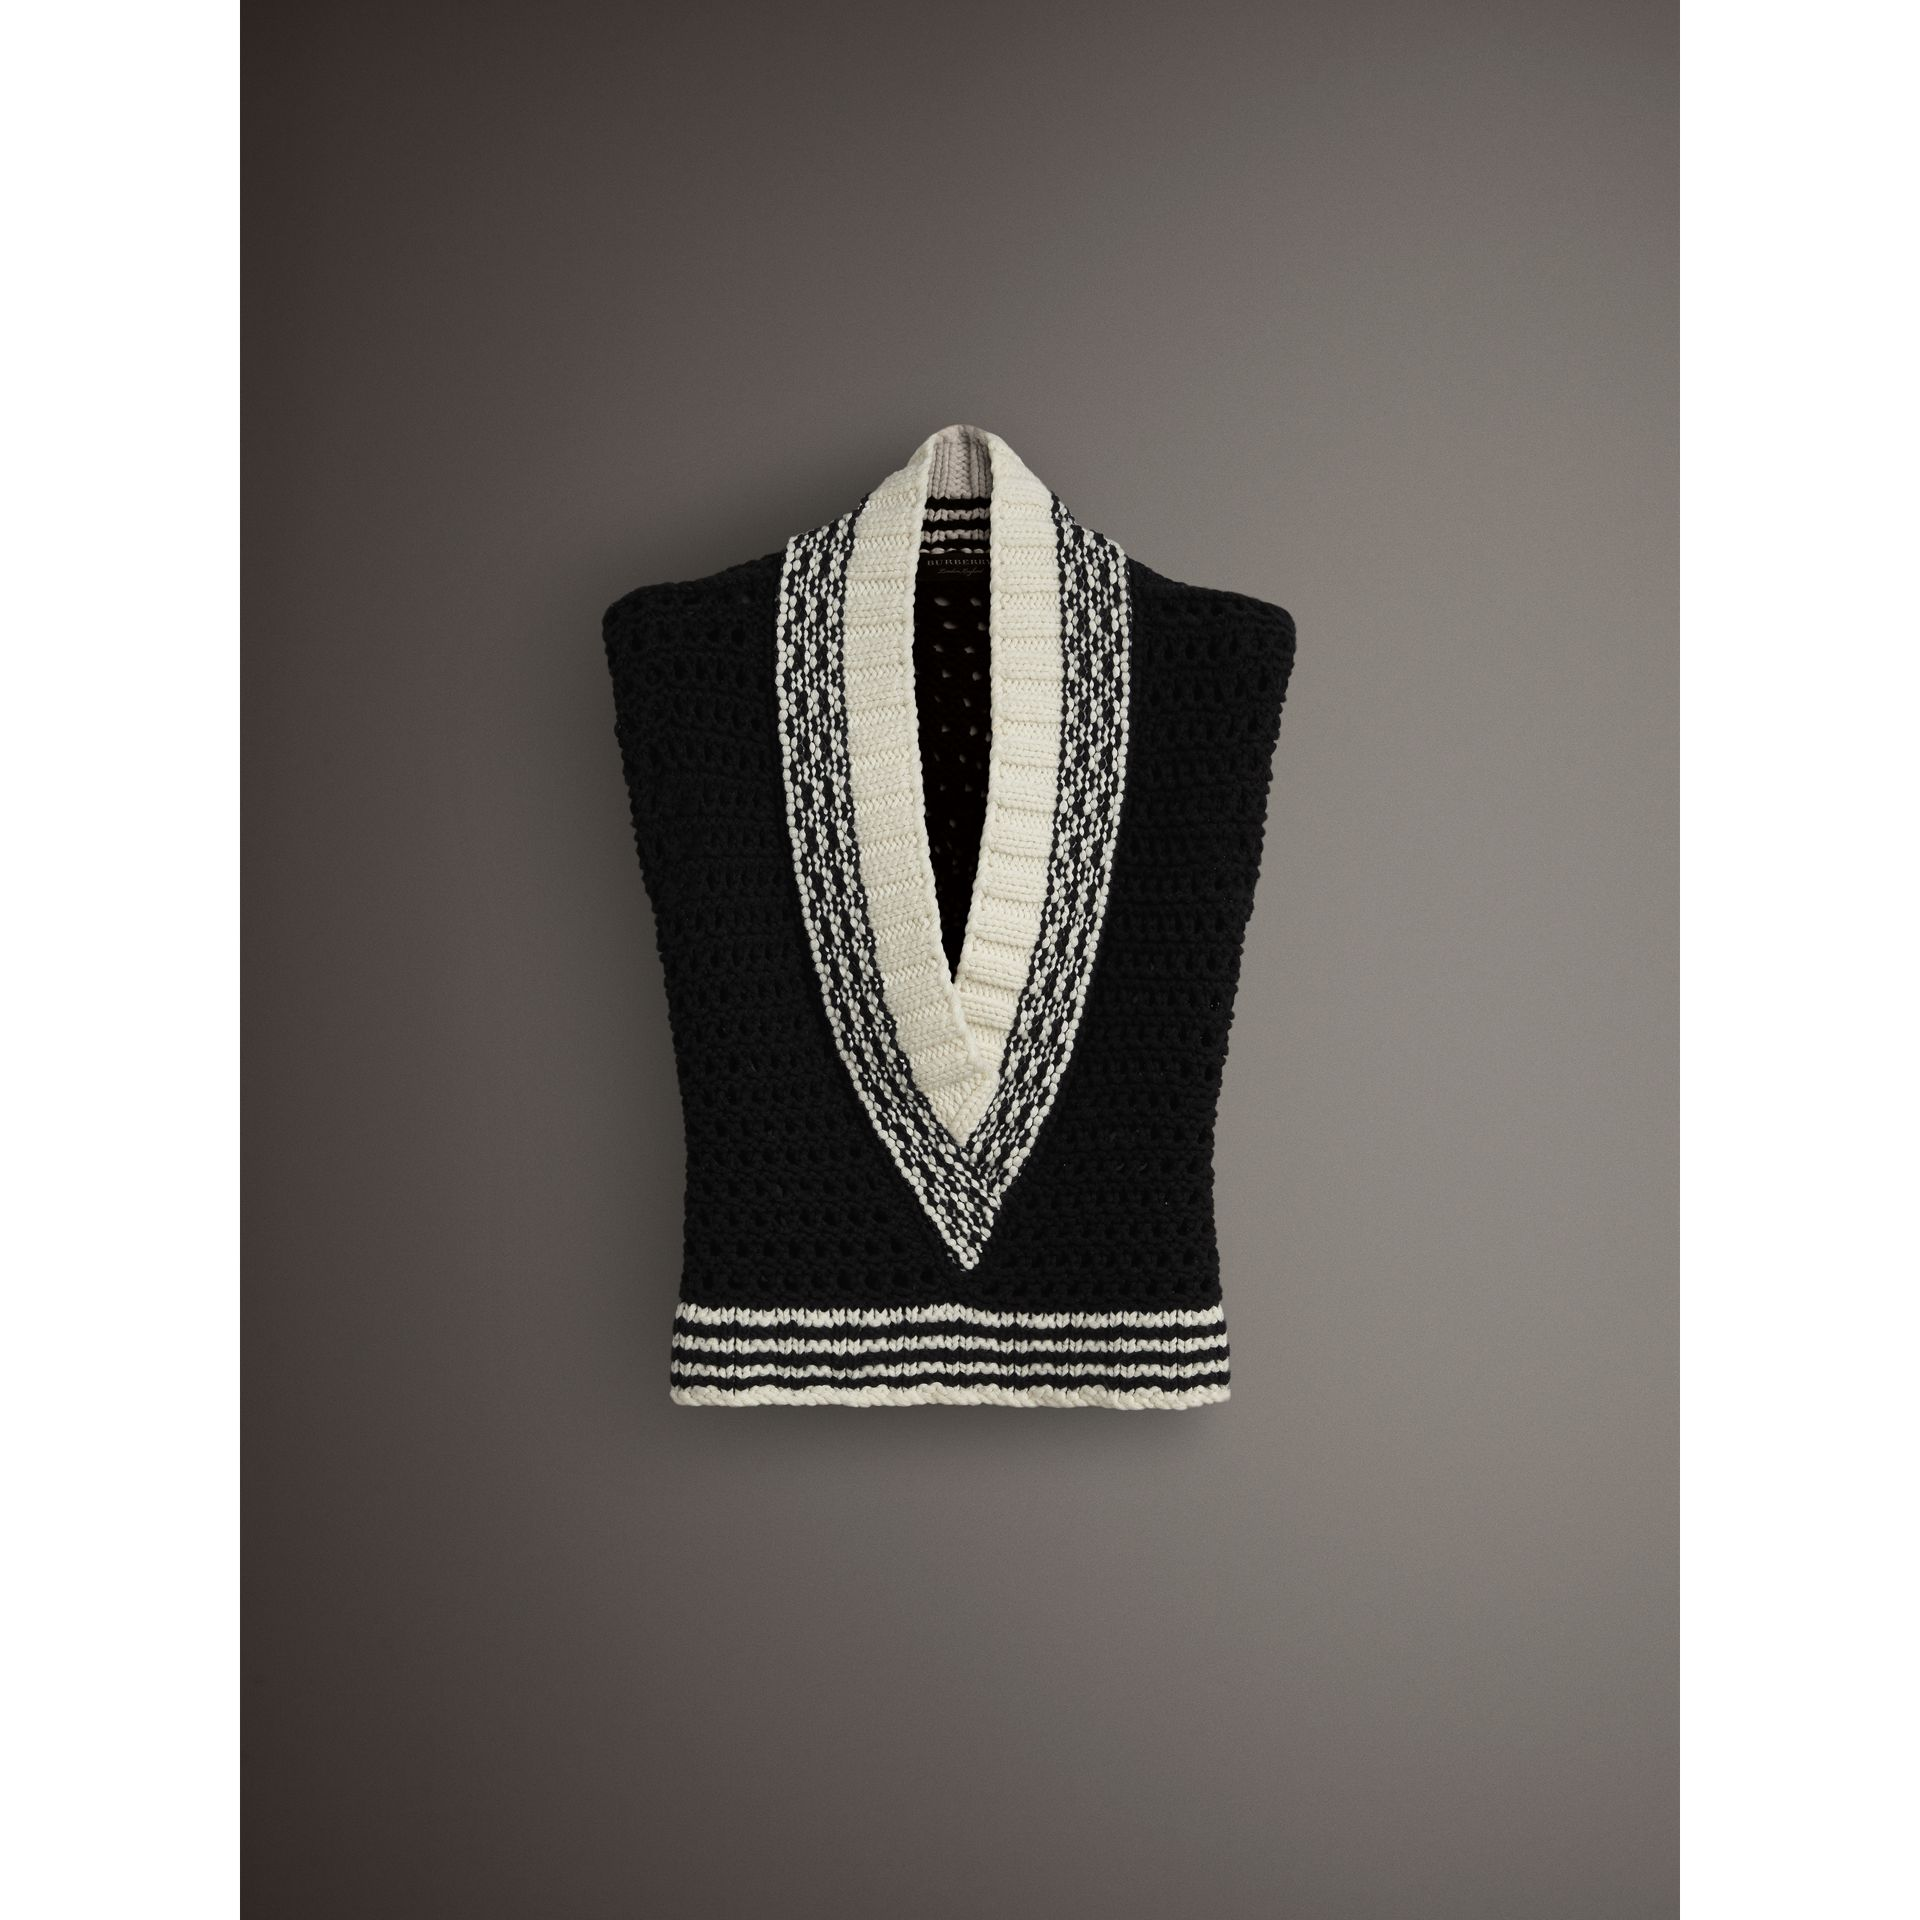 Cap-sleeve Knitted Wool V-neck Tank Top in Black/white - Women | Burberry - gallery image 3